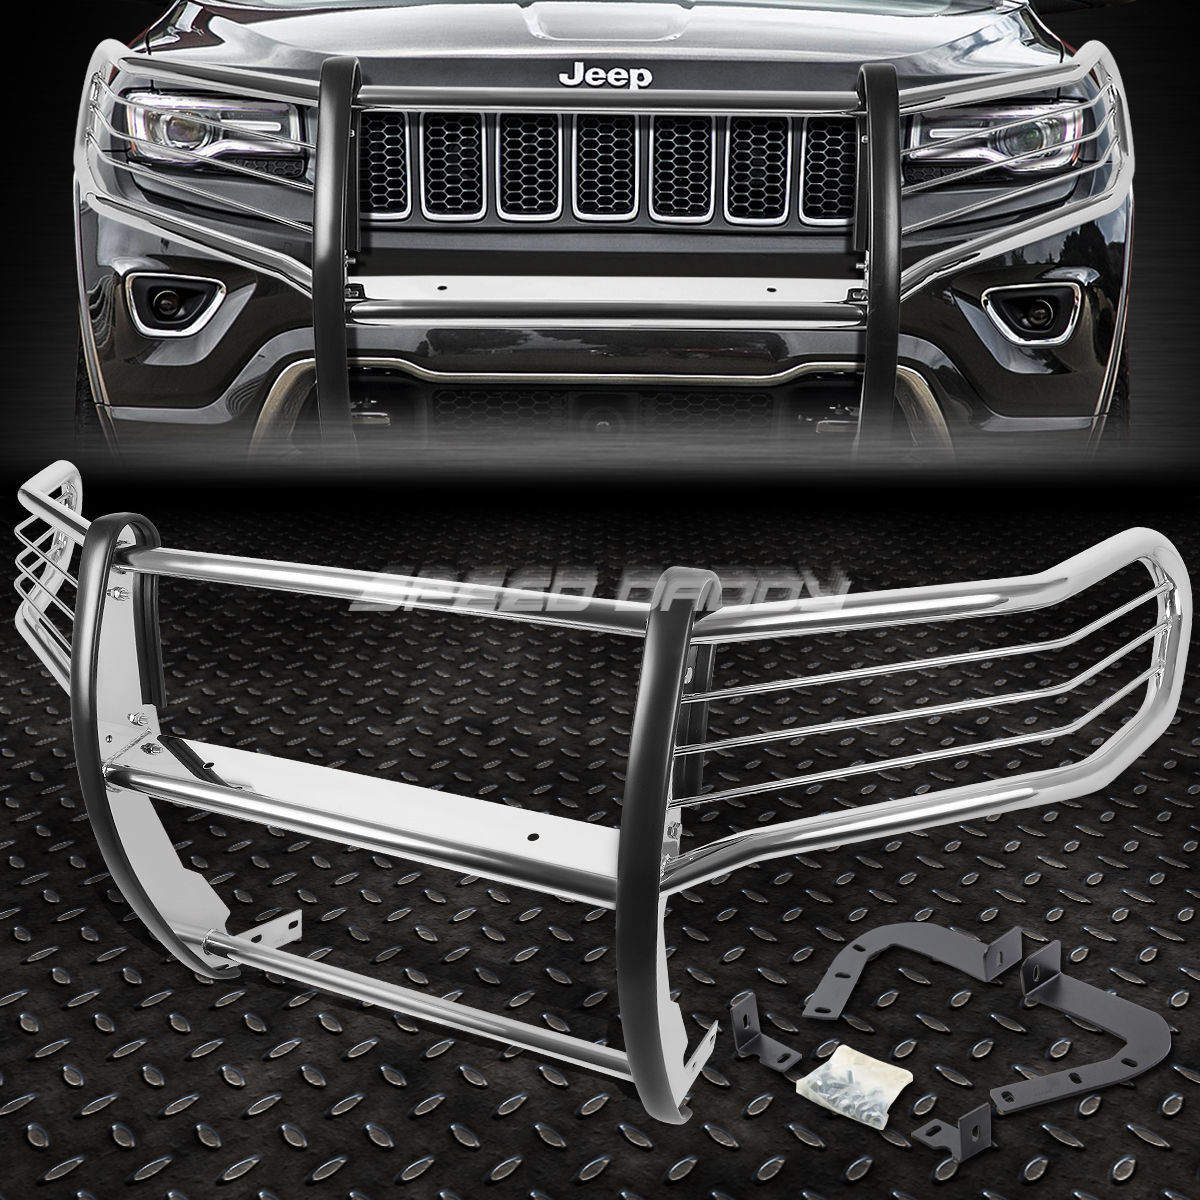 グリル 11-16 GRAND CHEROKEE WK2 SUVのためのクロムステンレスフロントバンパーグリルガード CHROME STAINLESS STEEL FRONT BUMPER GRILL GUARD FOR 11-16 GRAND CHEROKEE WK2 SUV